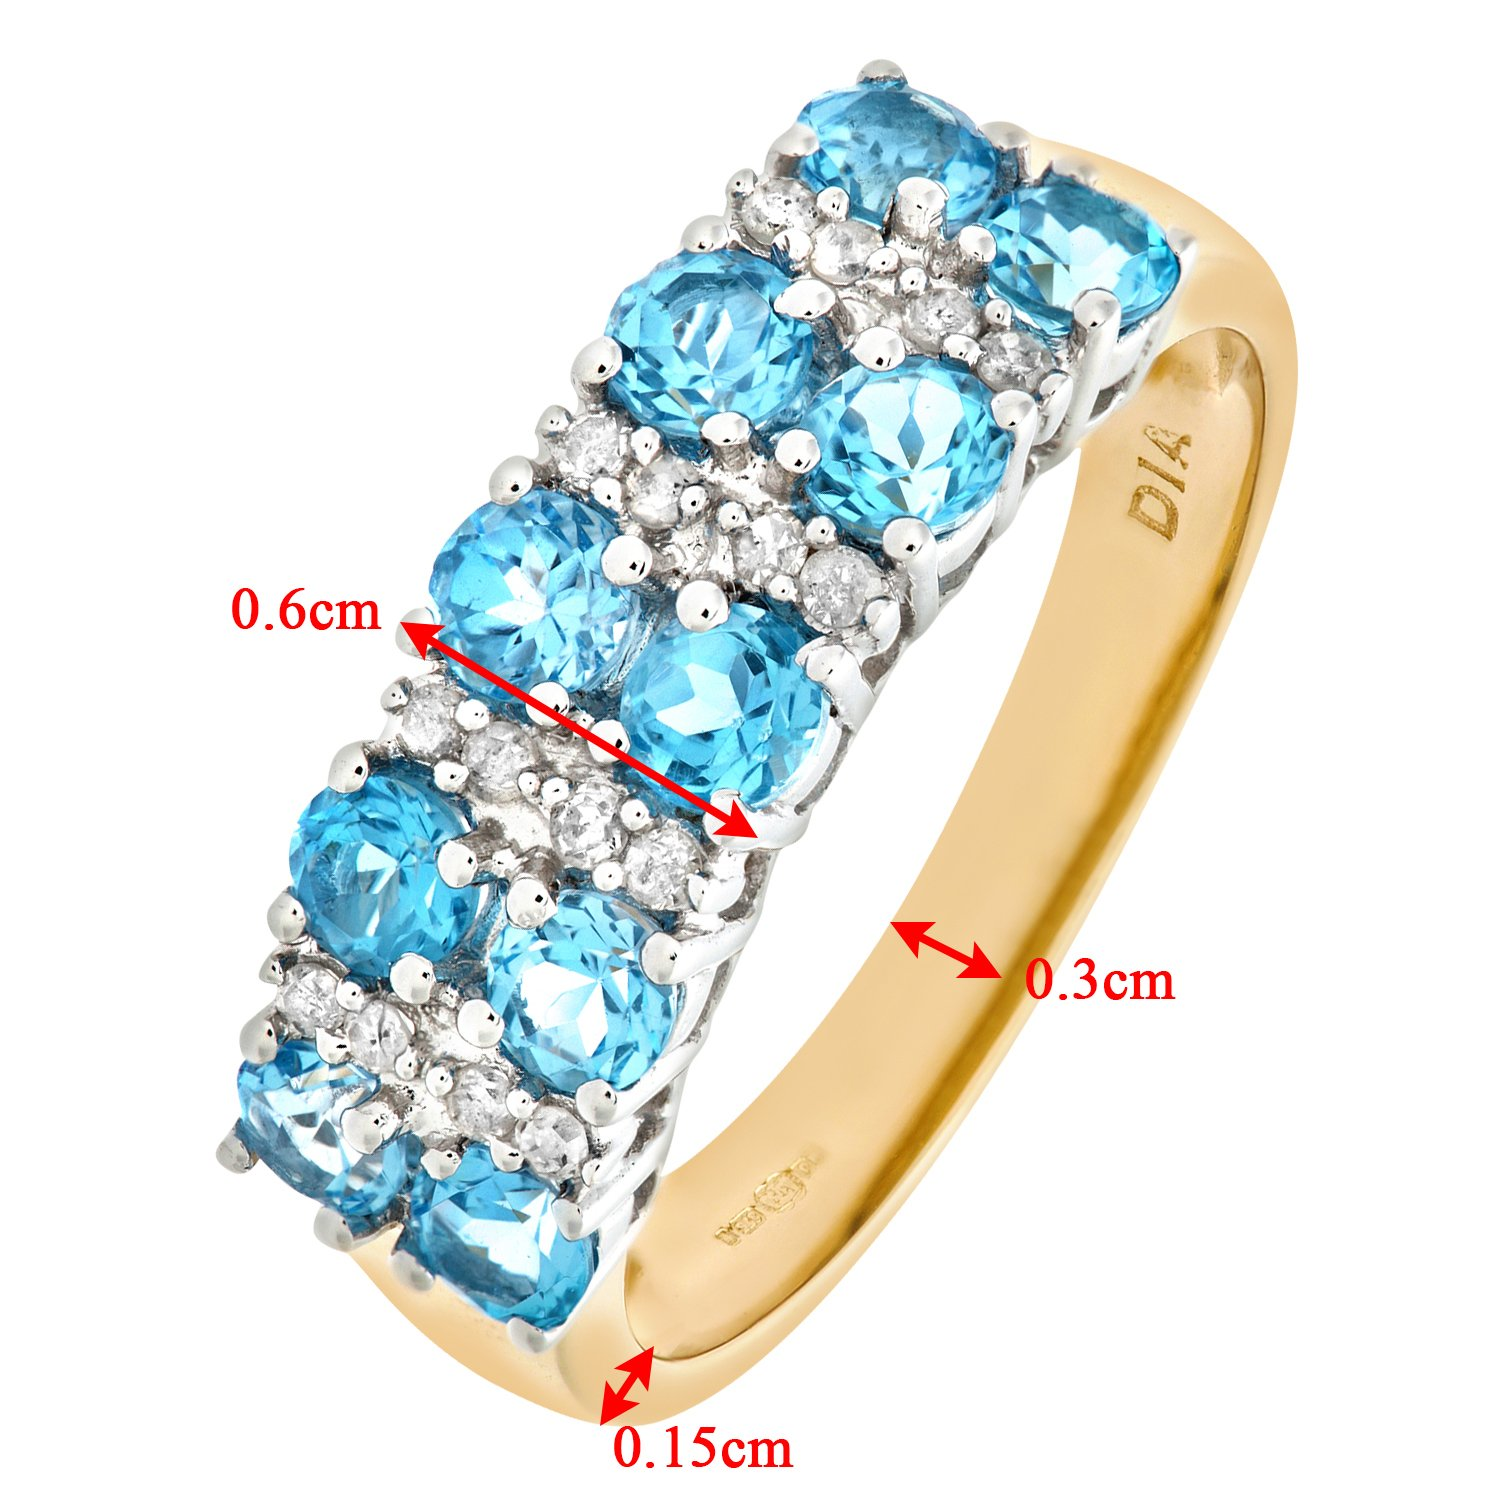 determine wooden engagement to promise the wedding isewbwh wood of rings markie new diamond how design